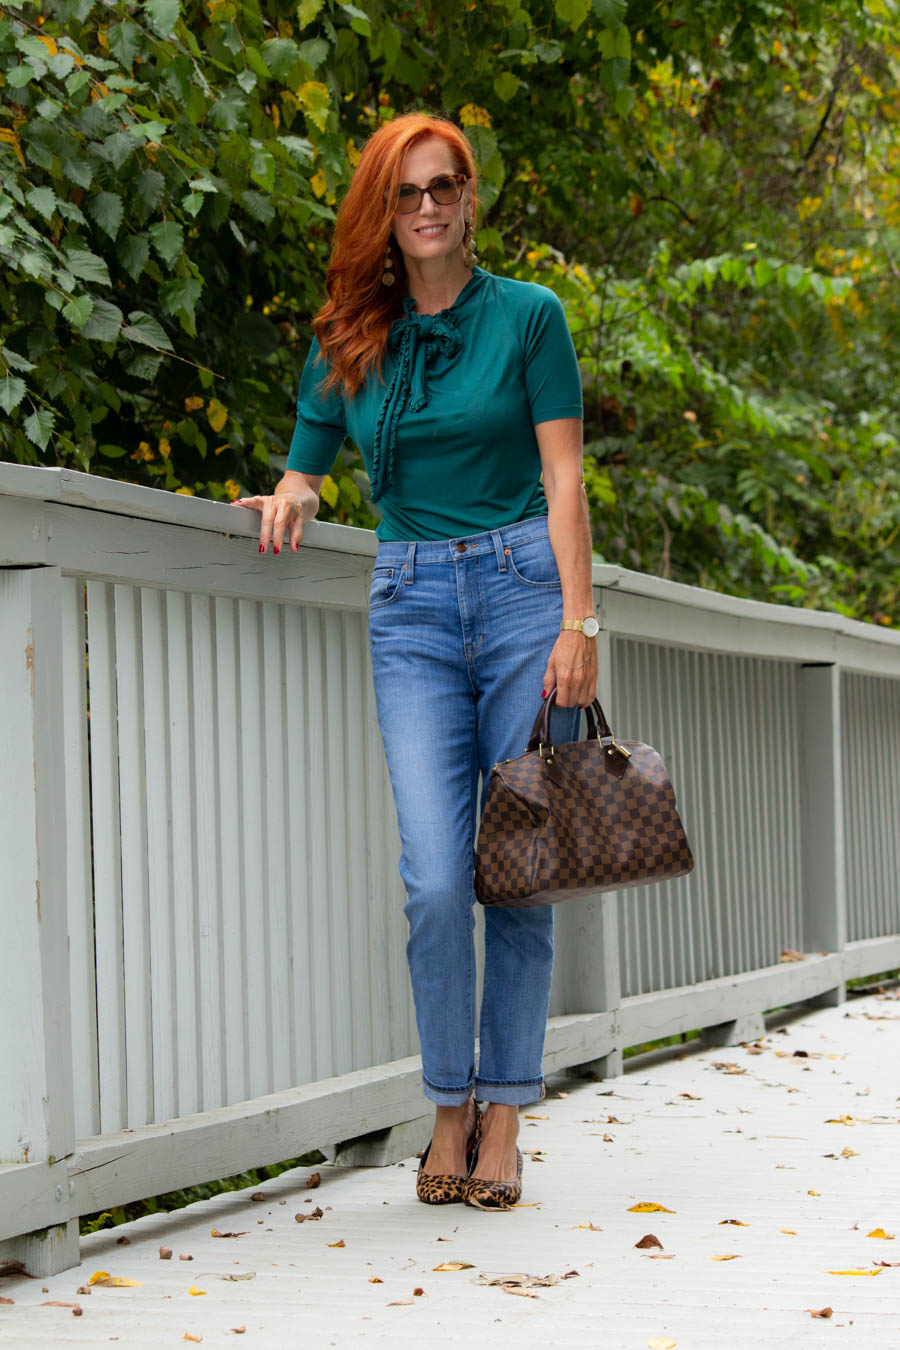 Teal blouse with straight leg jeans and LV bag